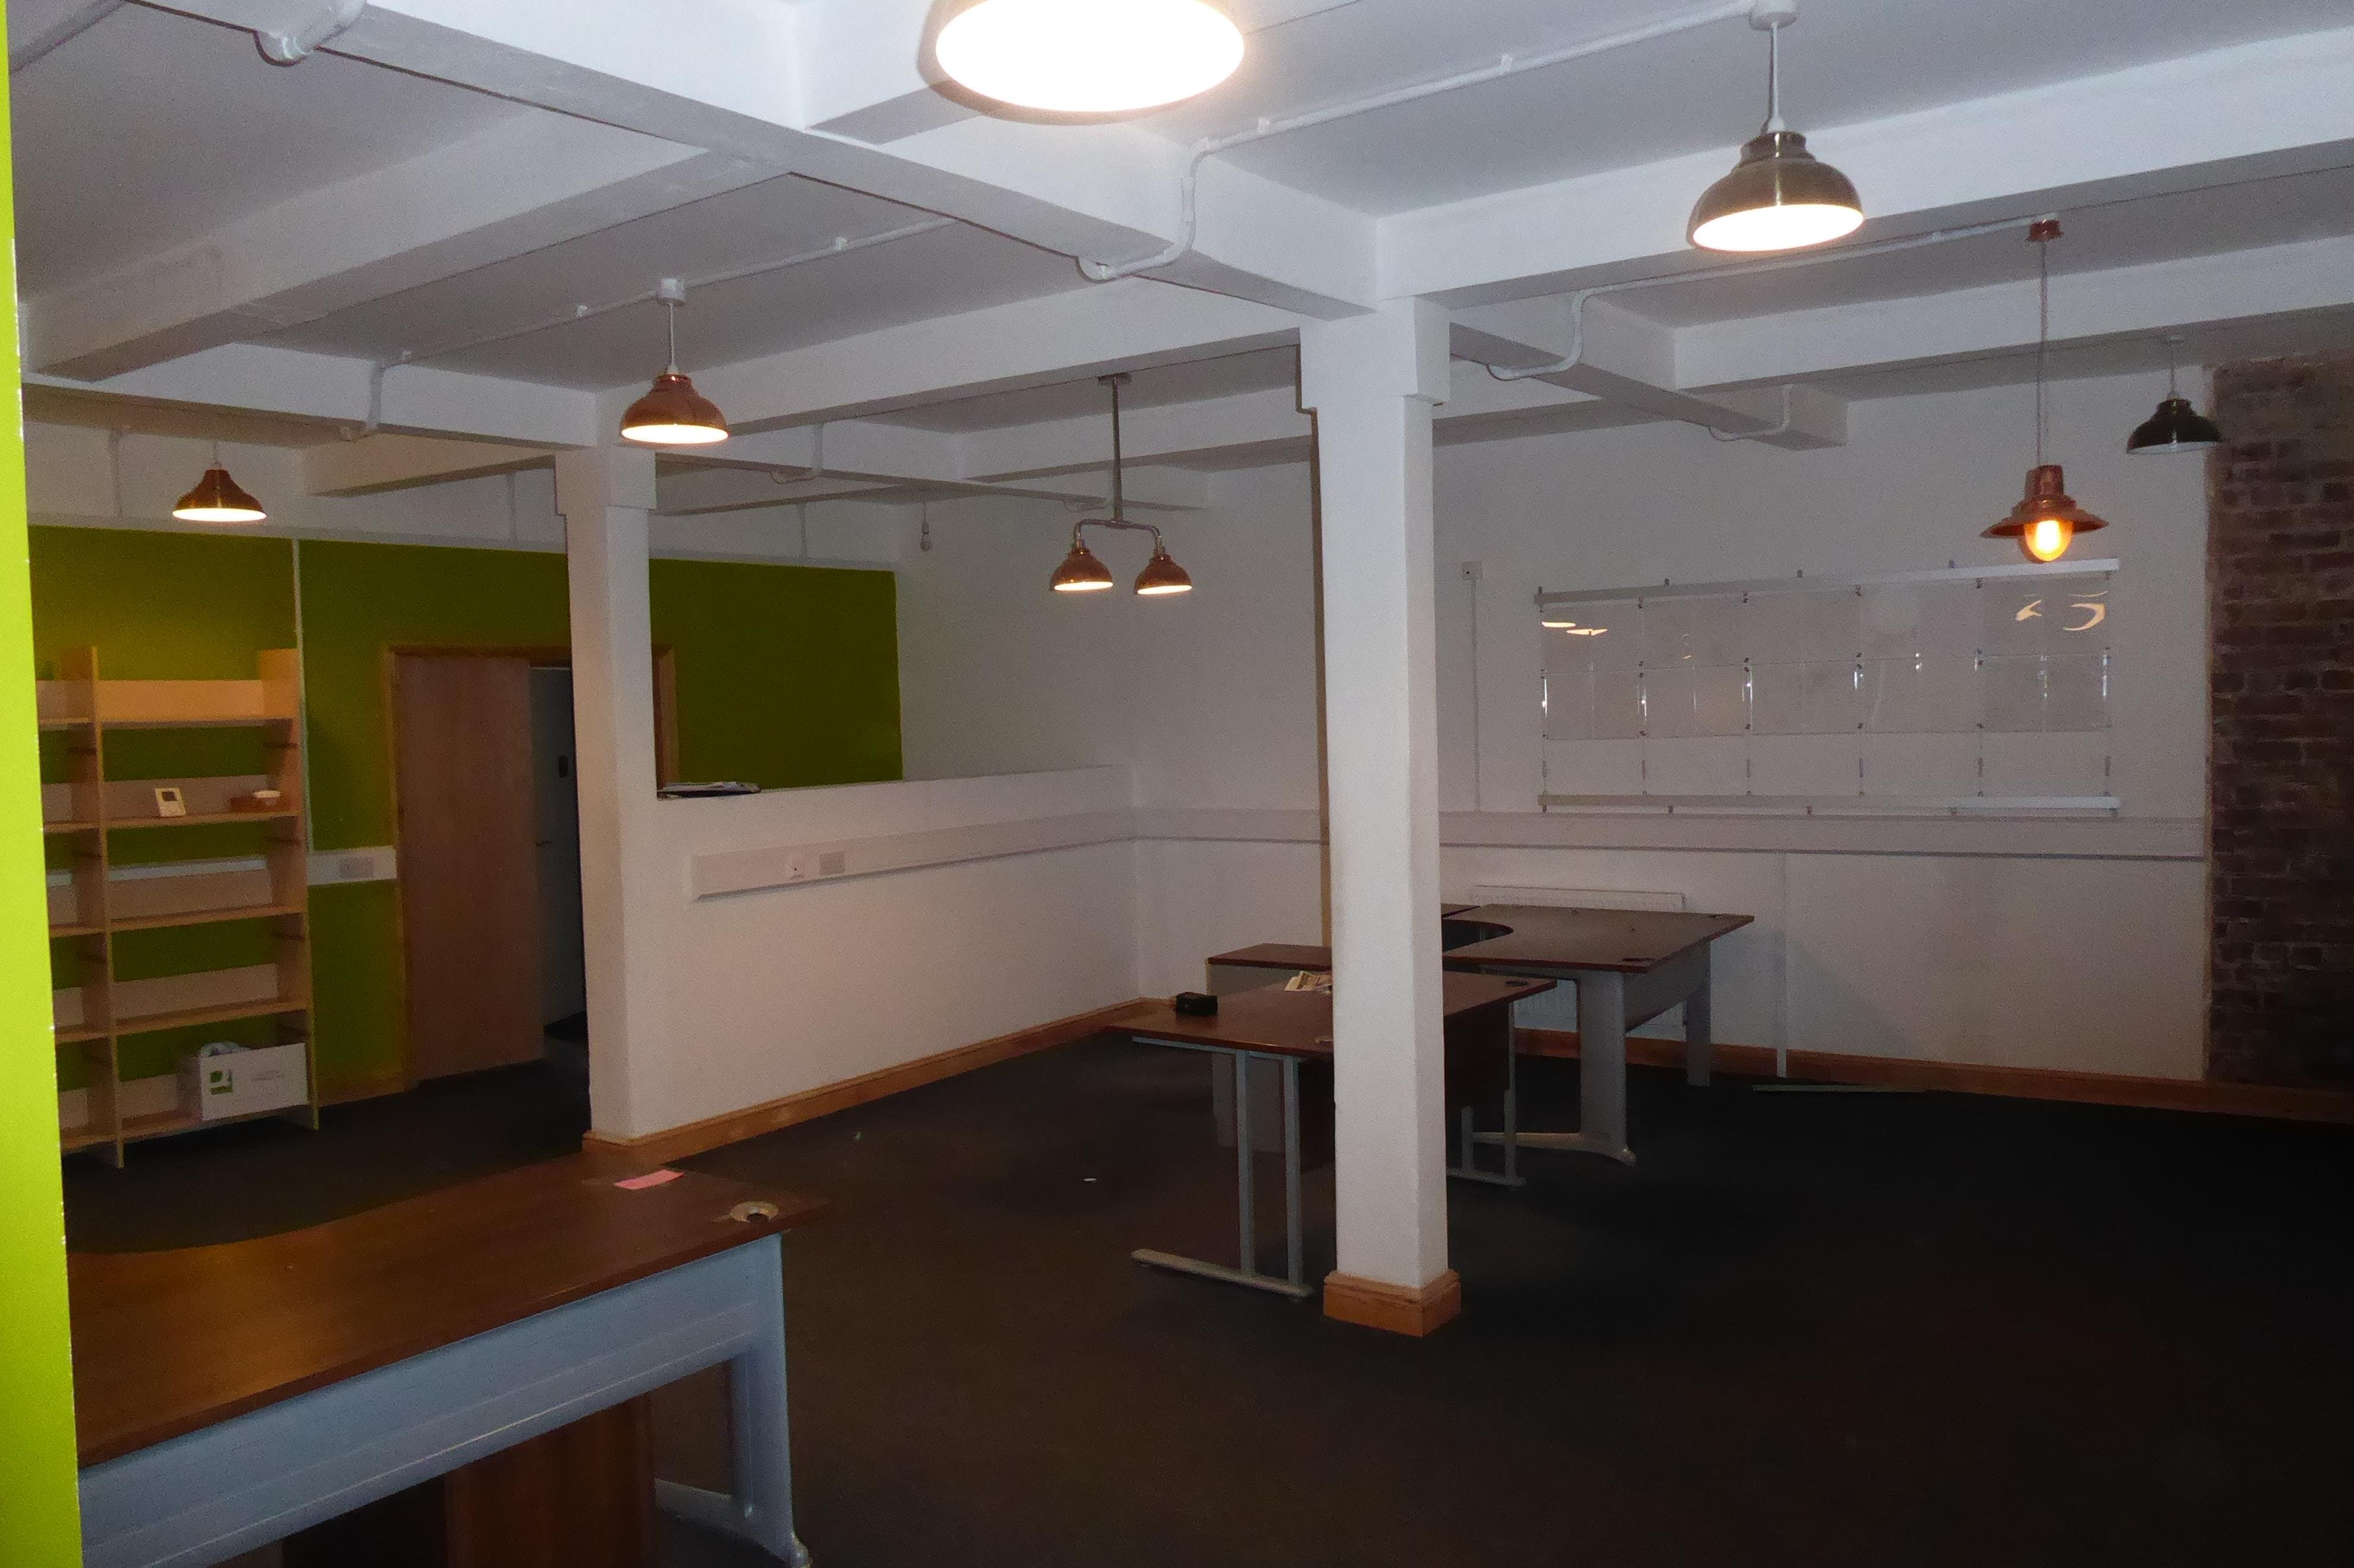 96-100 Middlewood Road, Hillsborough, Sheffield, Offices / Retail / Restaurant / Suis Generis (other) To Let - P1030889.JPG